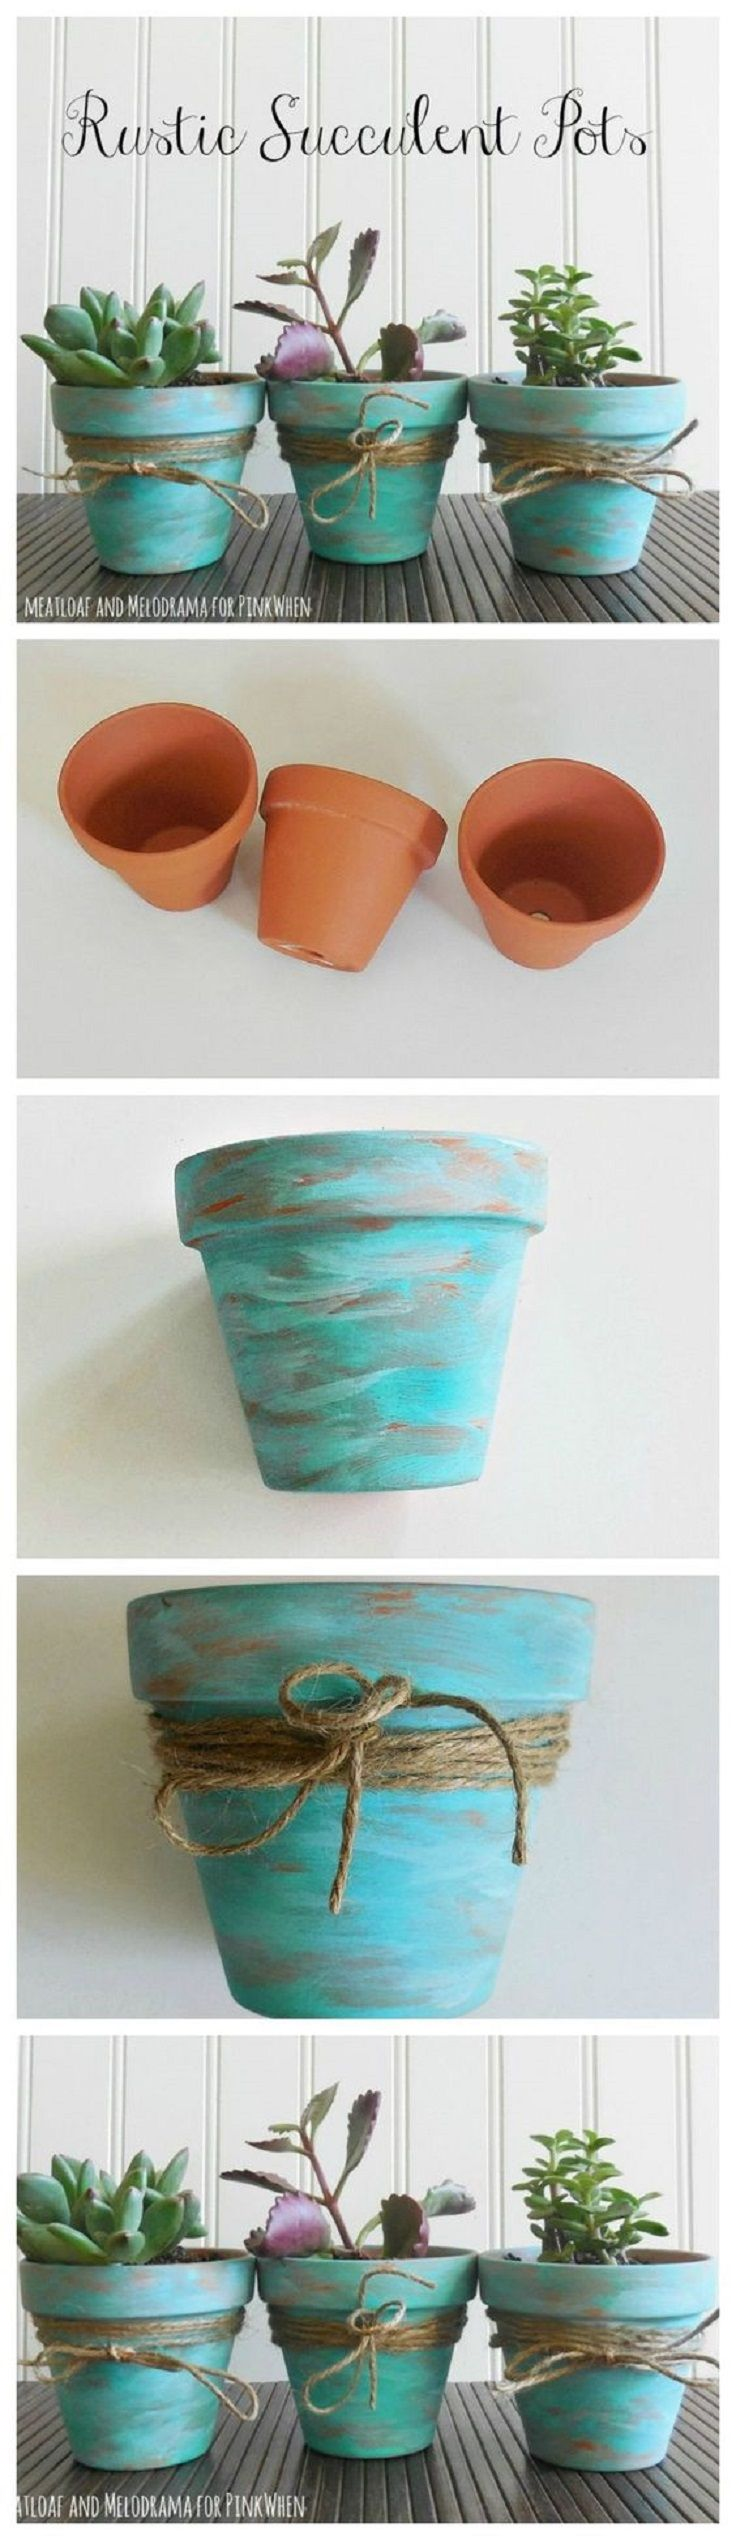 DIY Rustic Succulent Pots - 16 Picture Perfect Spring Decorations to Celebrate the Blissful Season